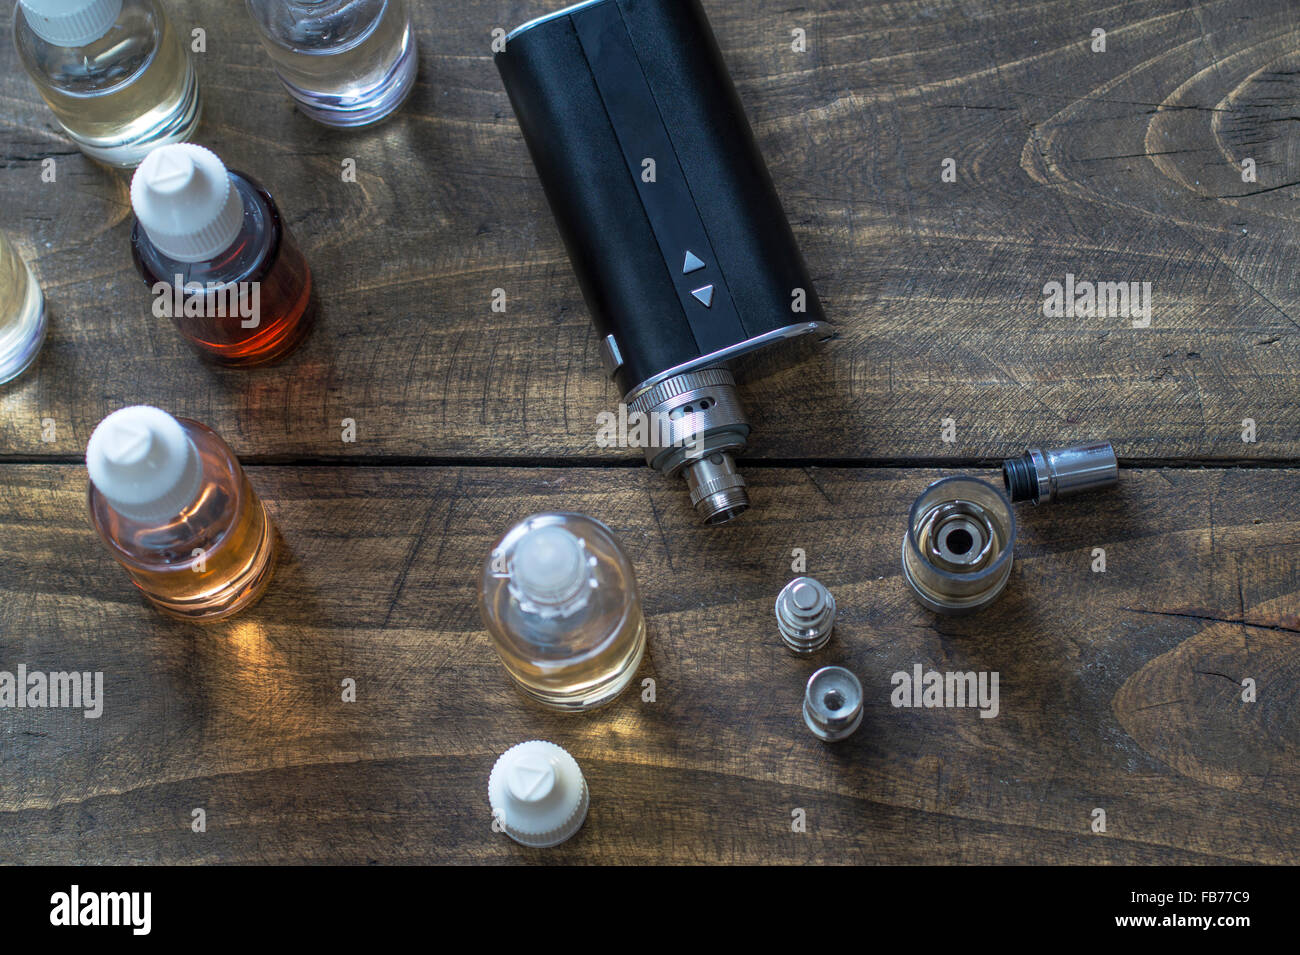 e-cigarettes with lots of different re-fill bottles, from above - Stock Image